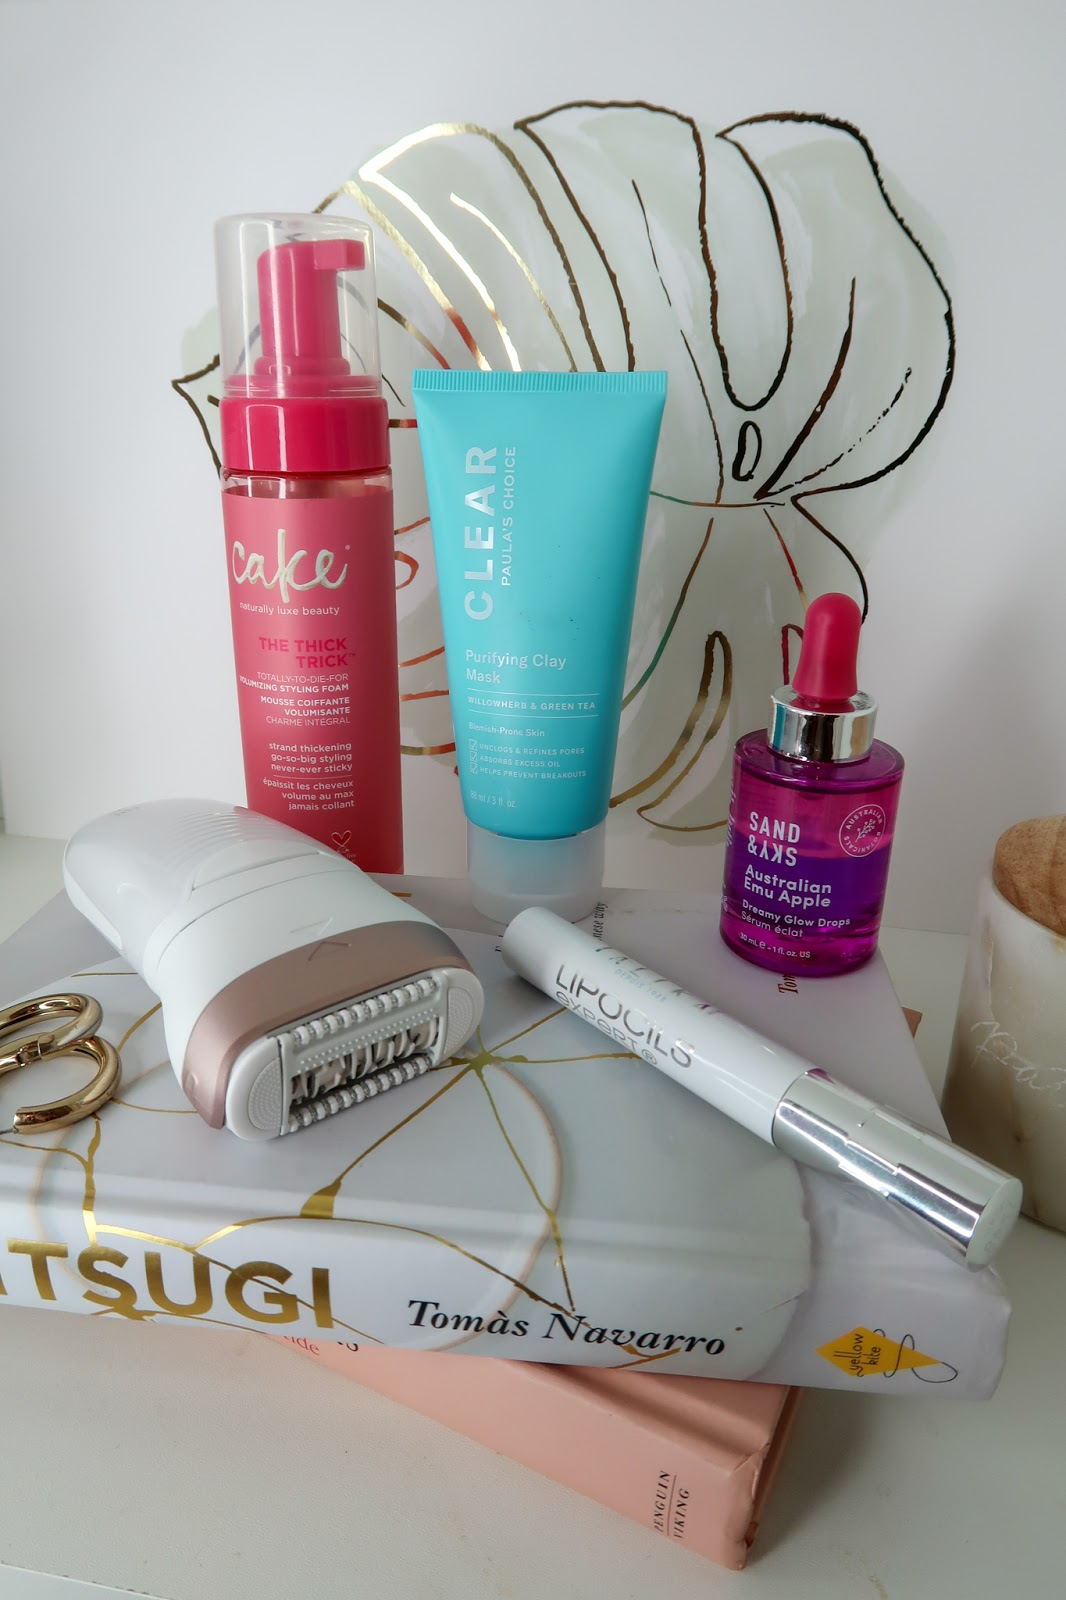 6 new things in my beauty routine